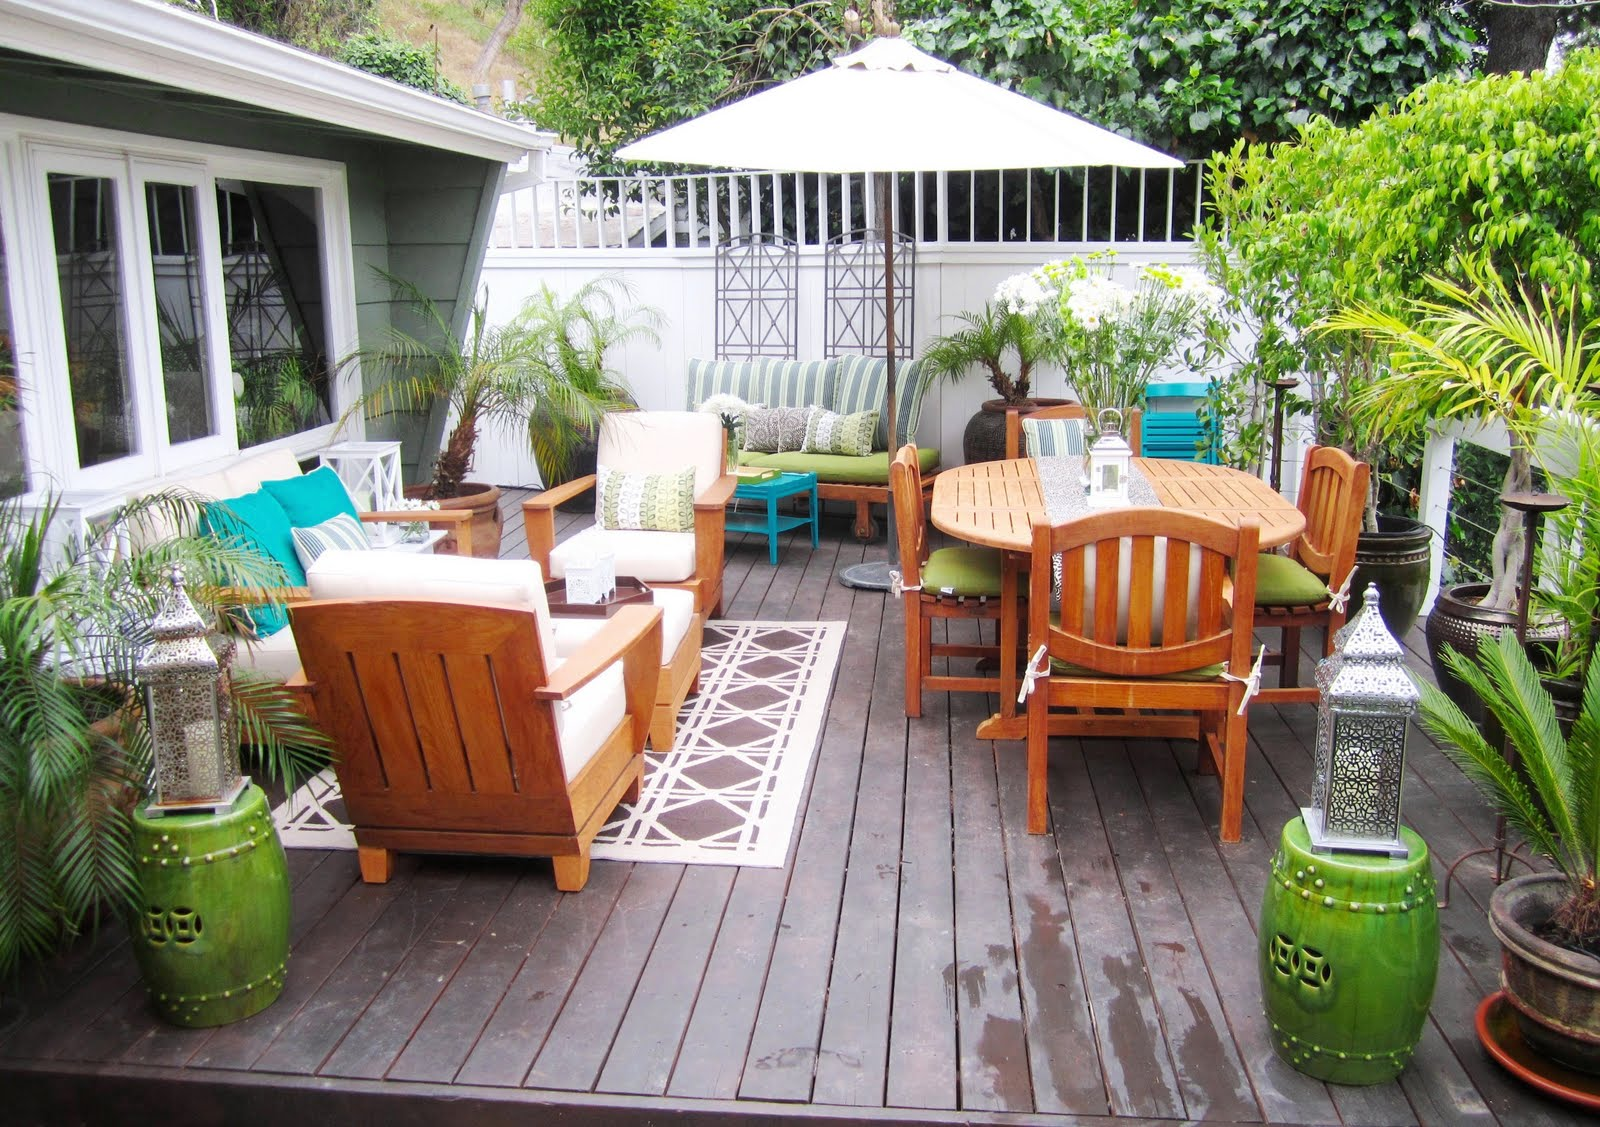 Deck Decorating Ideas title=